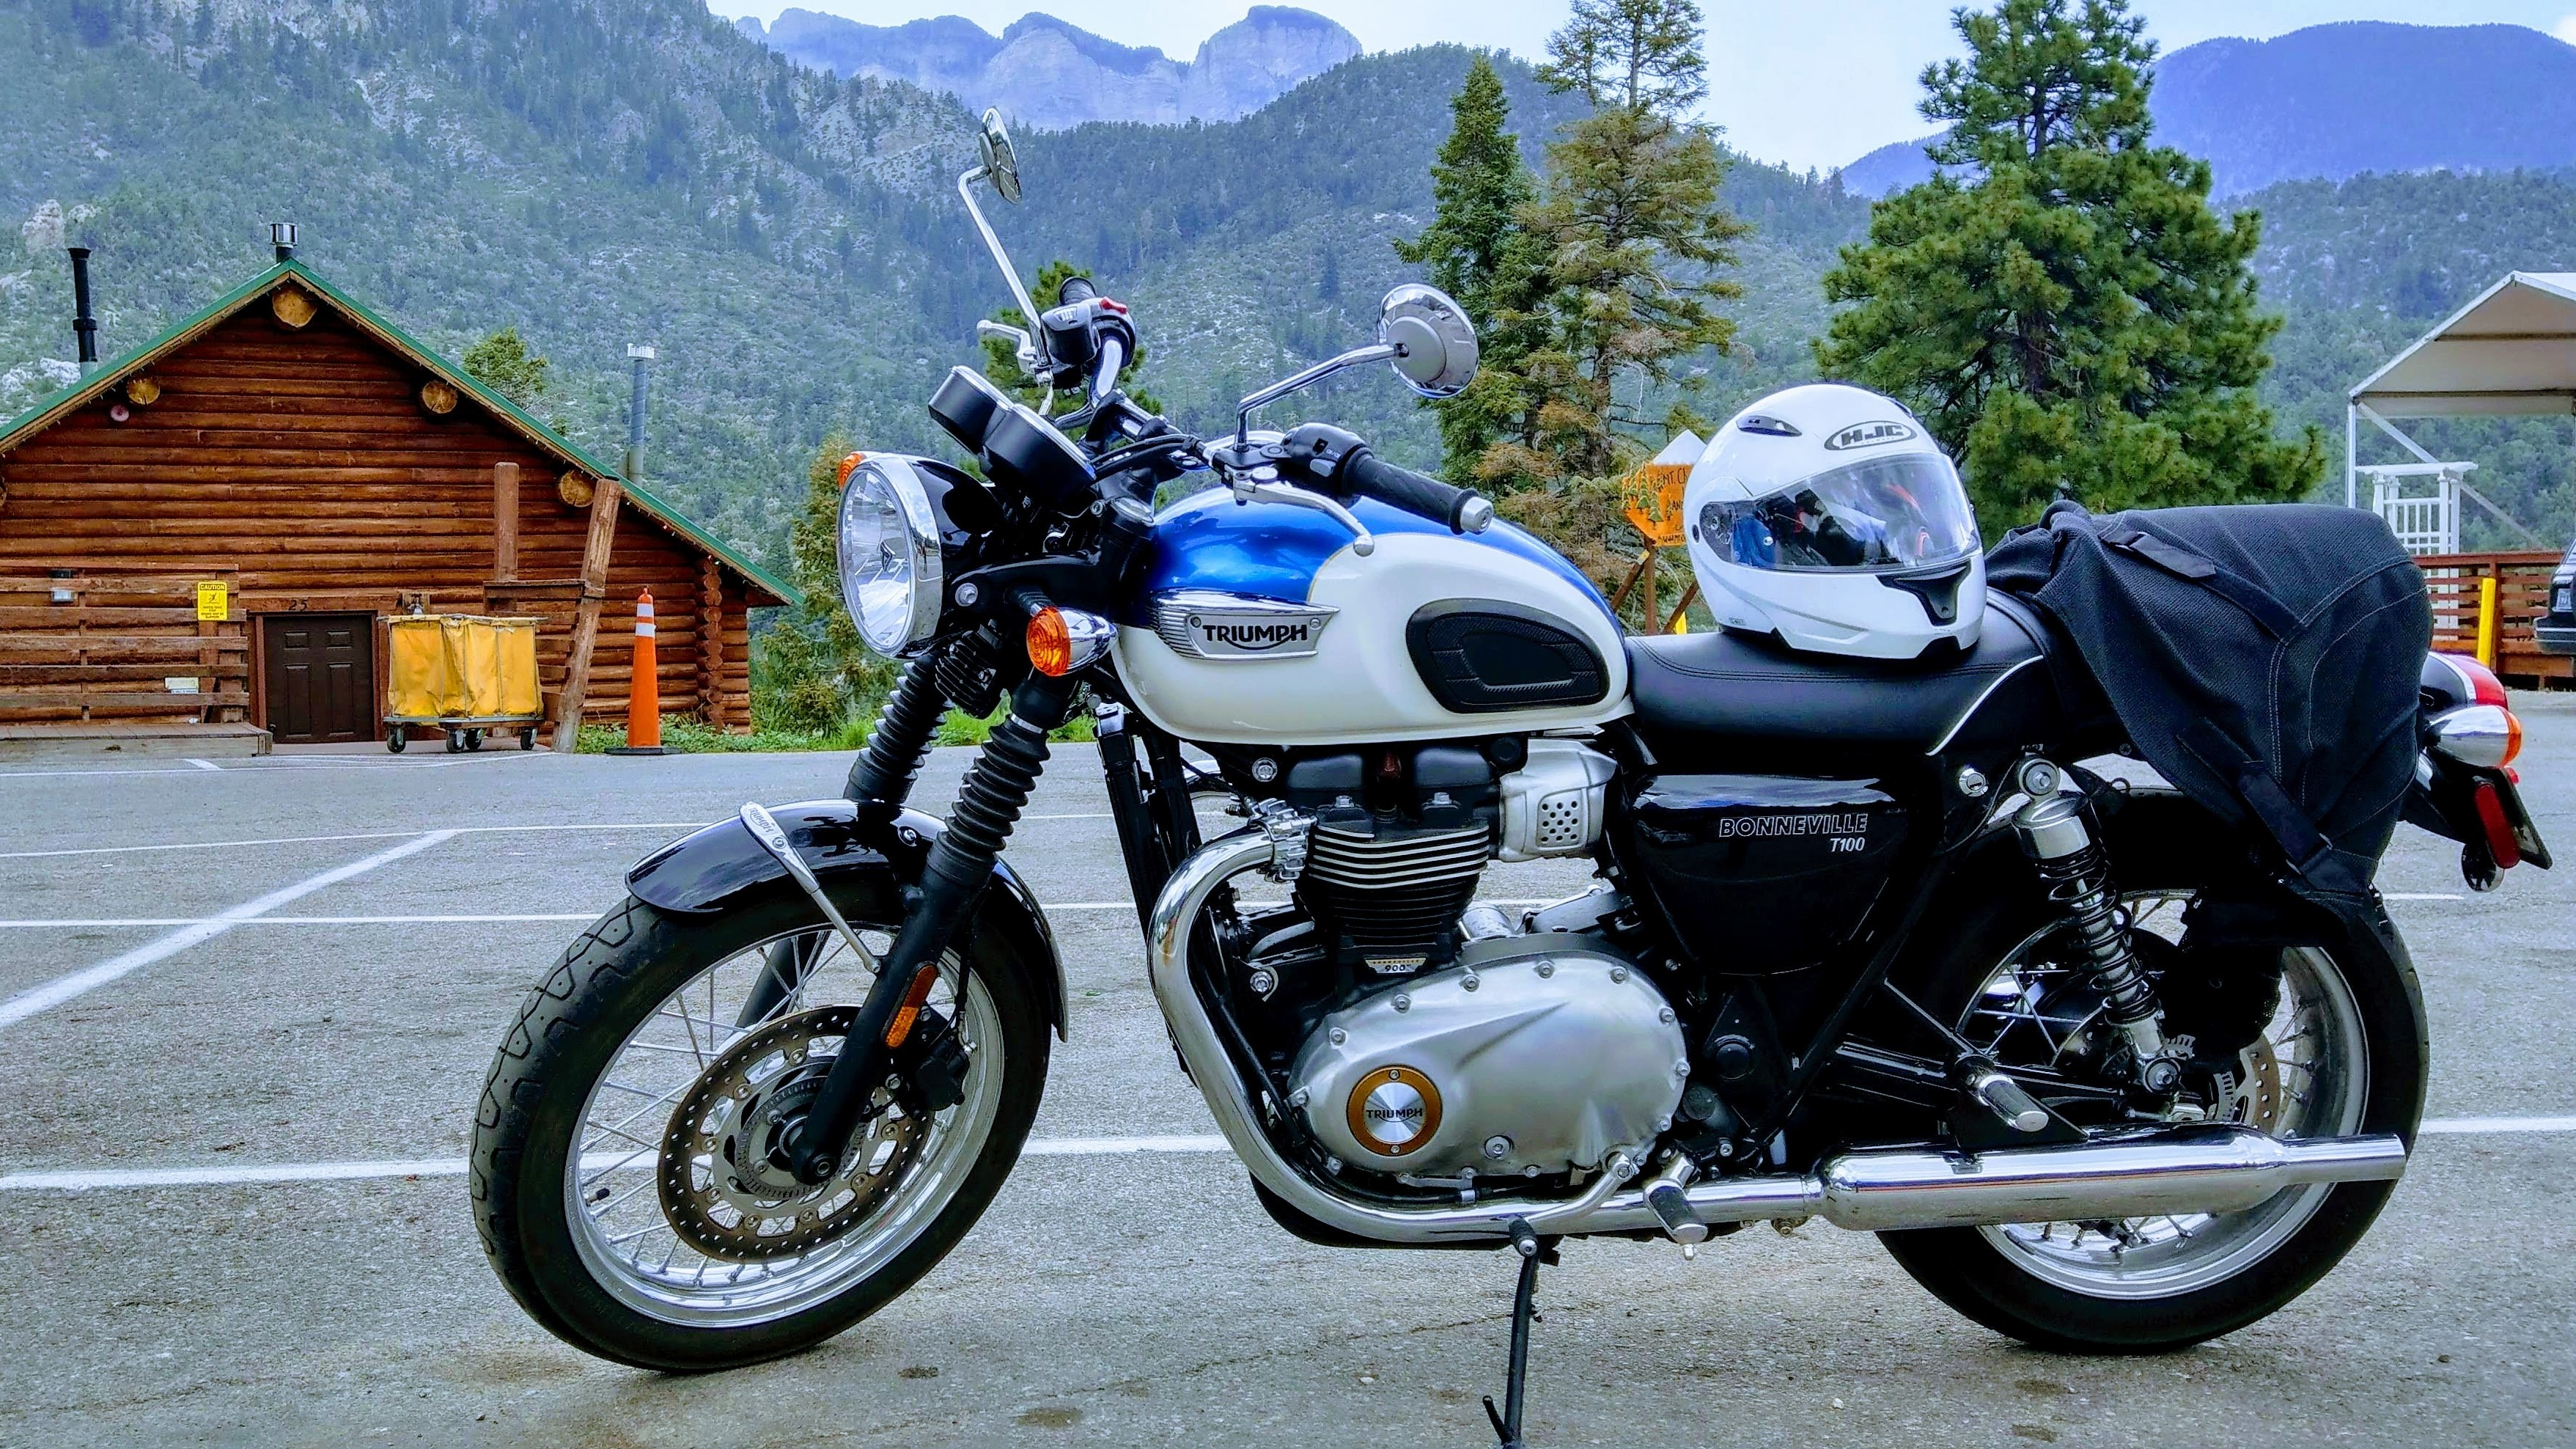 2018 Triumph Bonneville T100 Ride Review Onthebackwheelcom